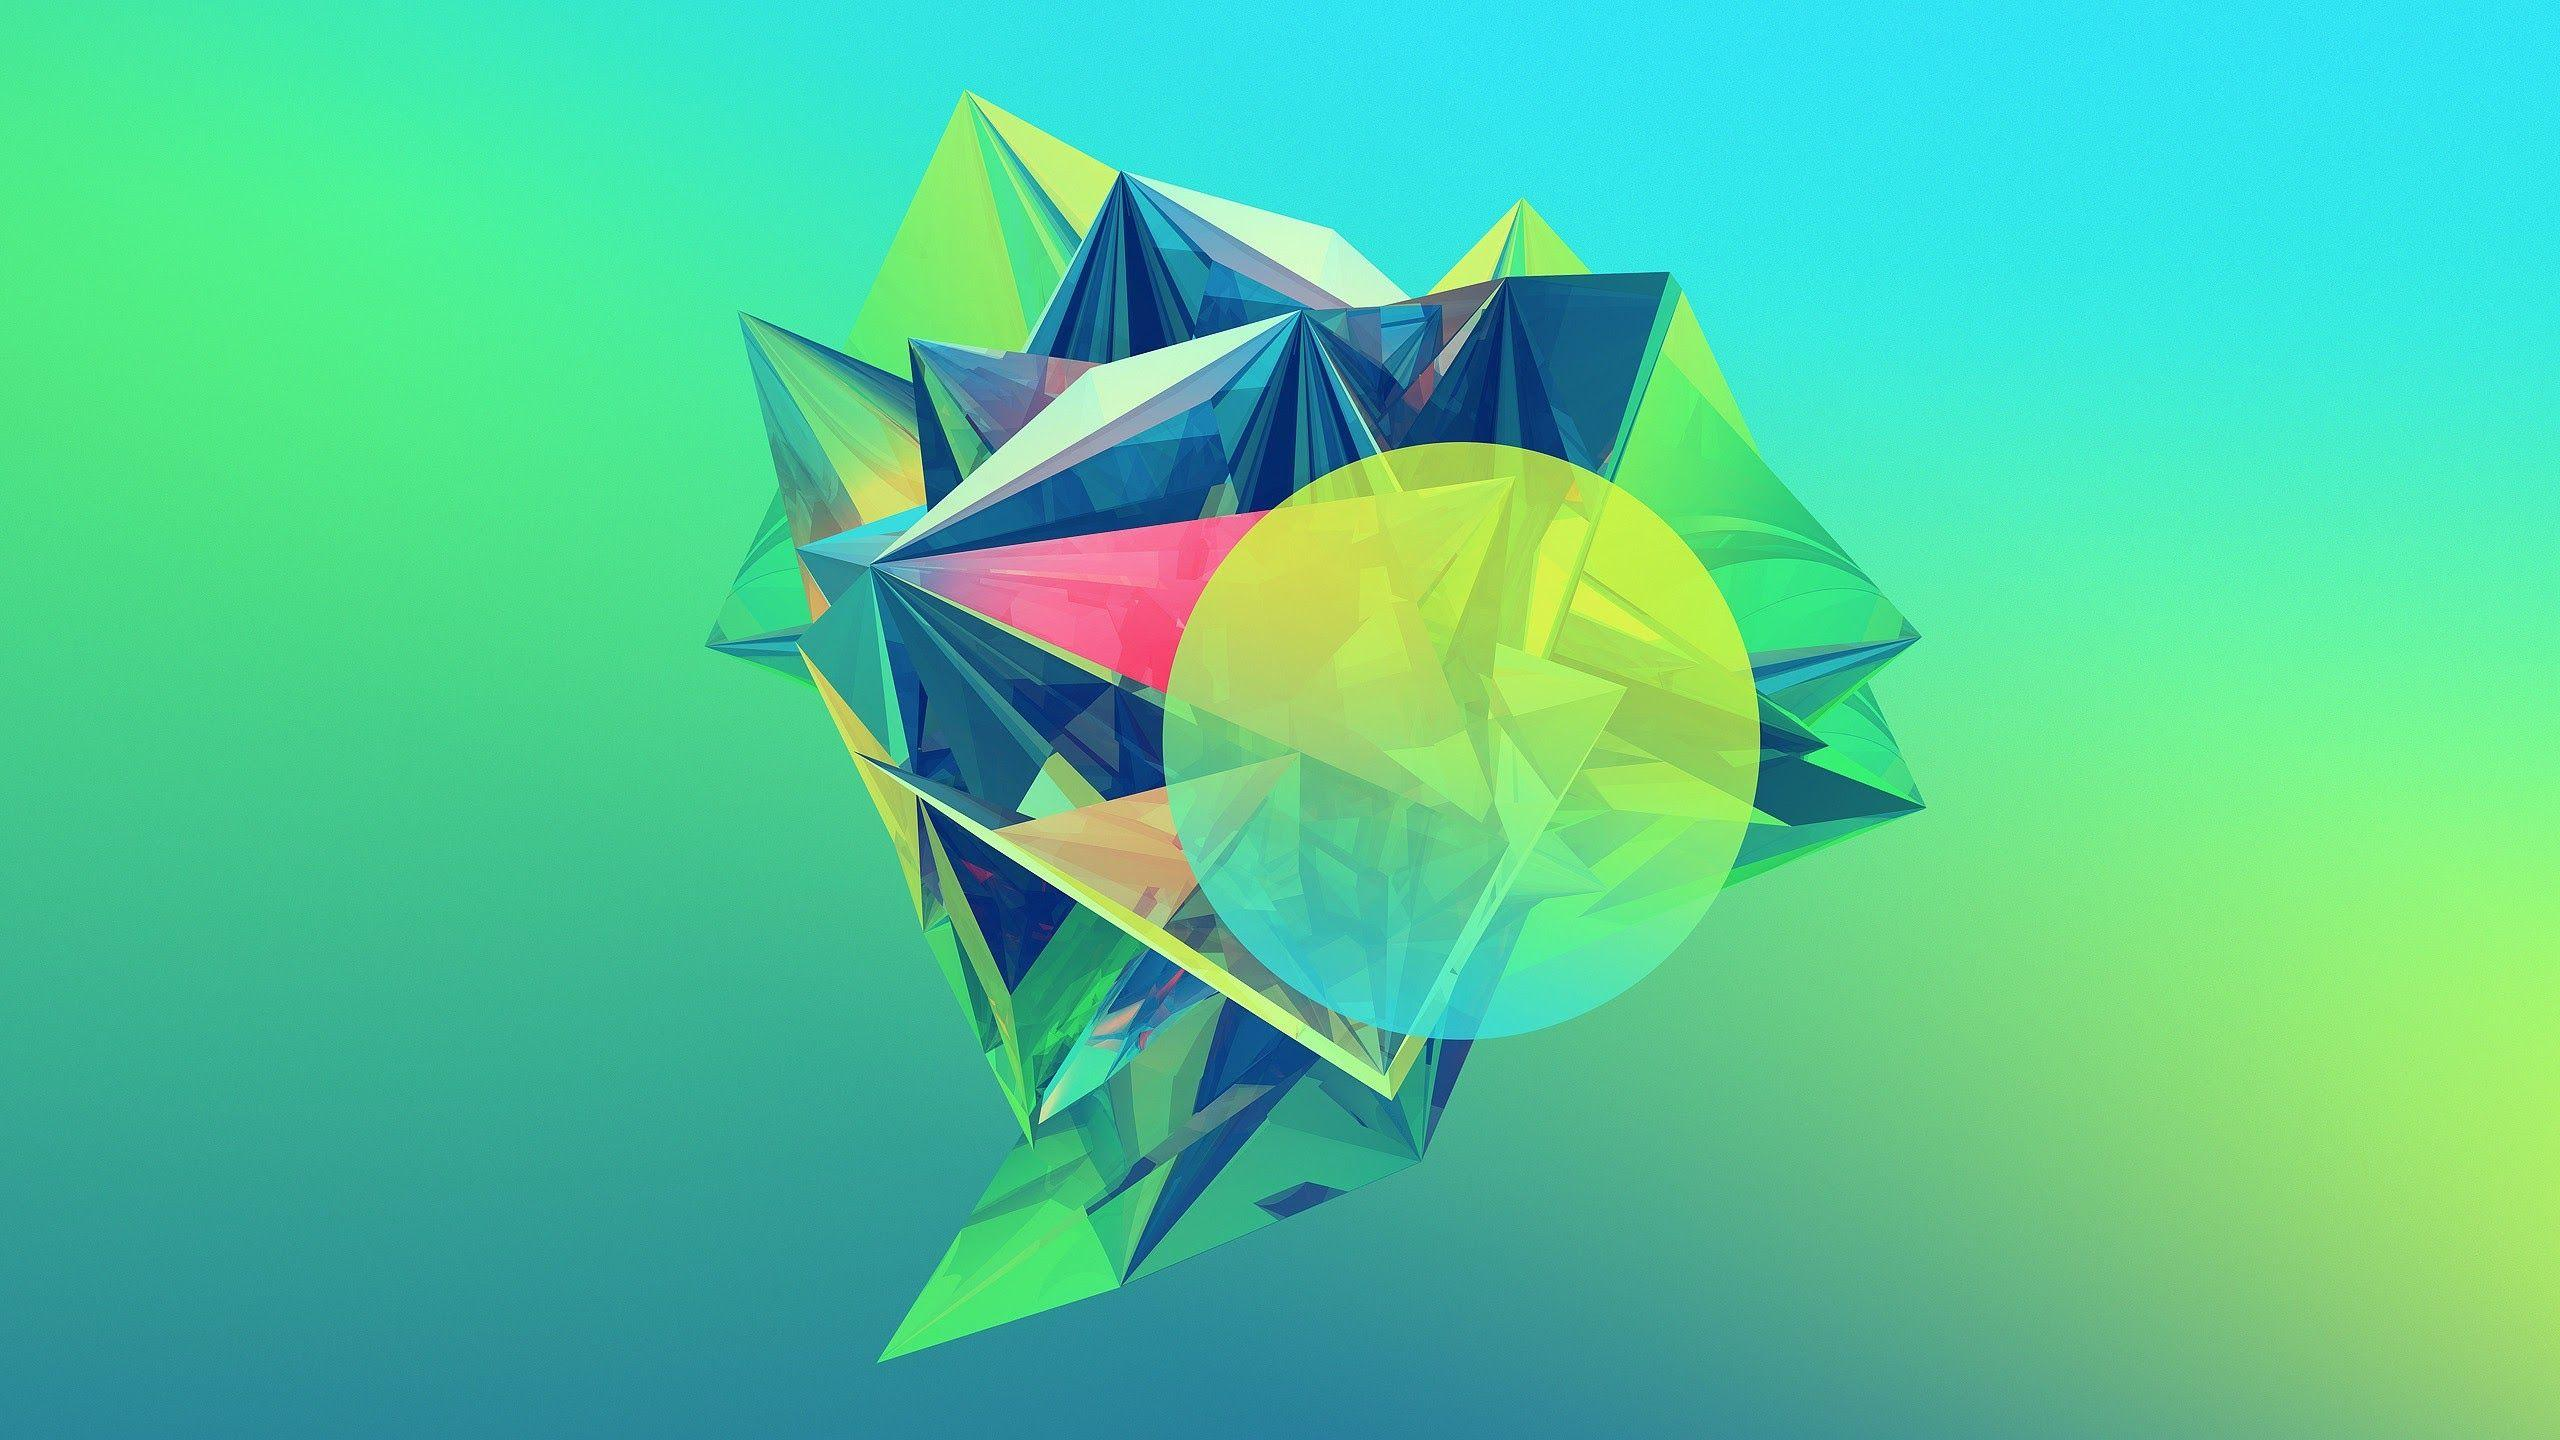 50 rich and colorful geometric wallpapers for your mobile devices ...